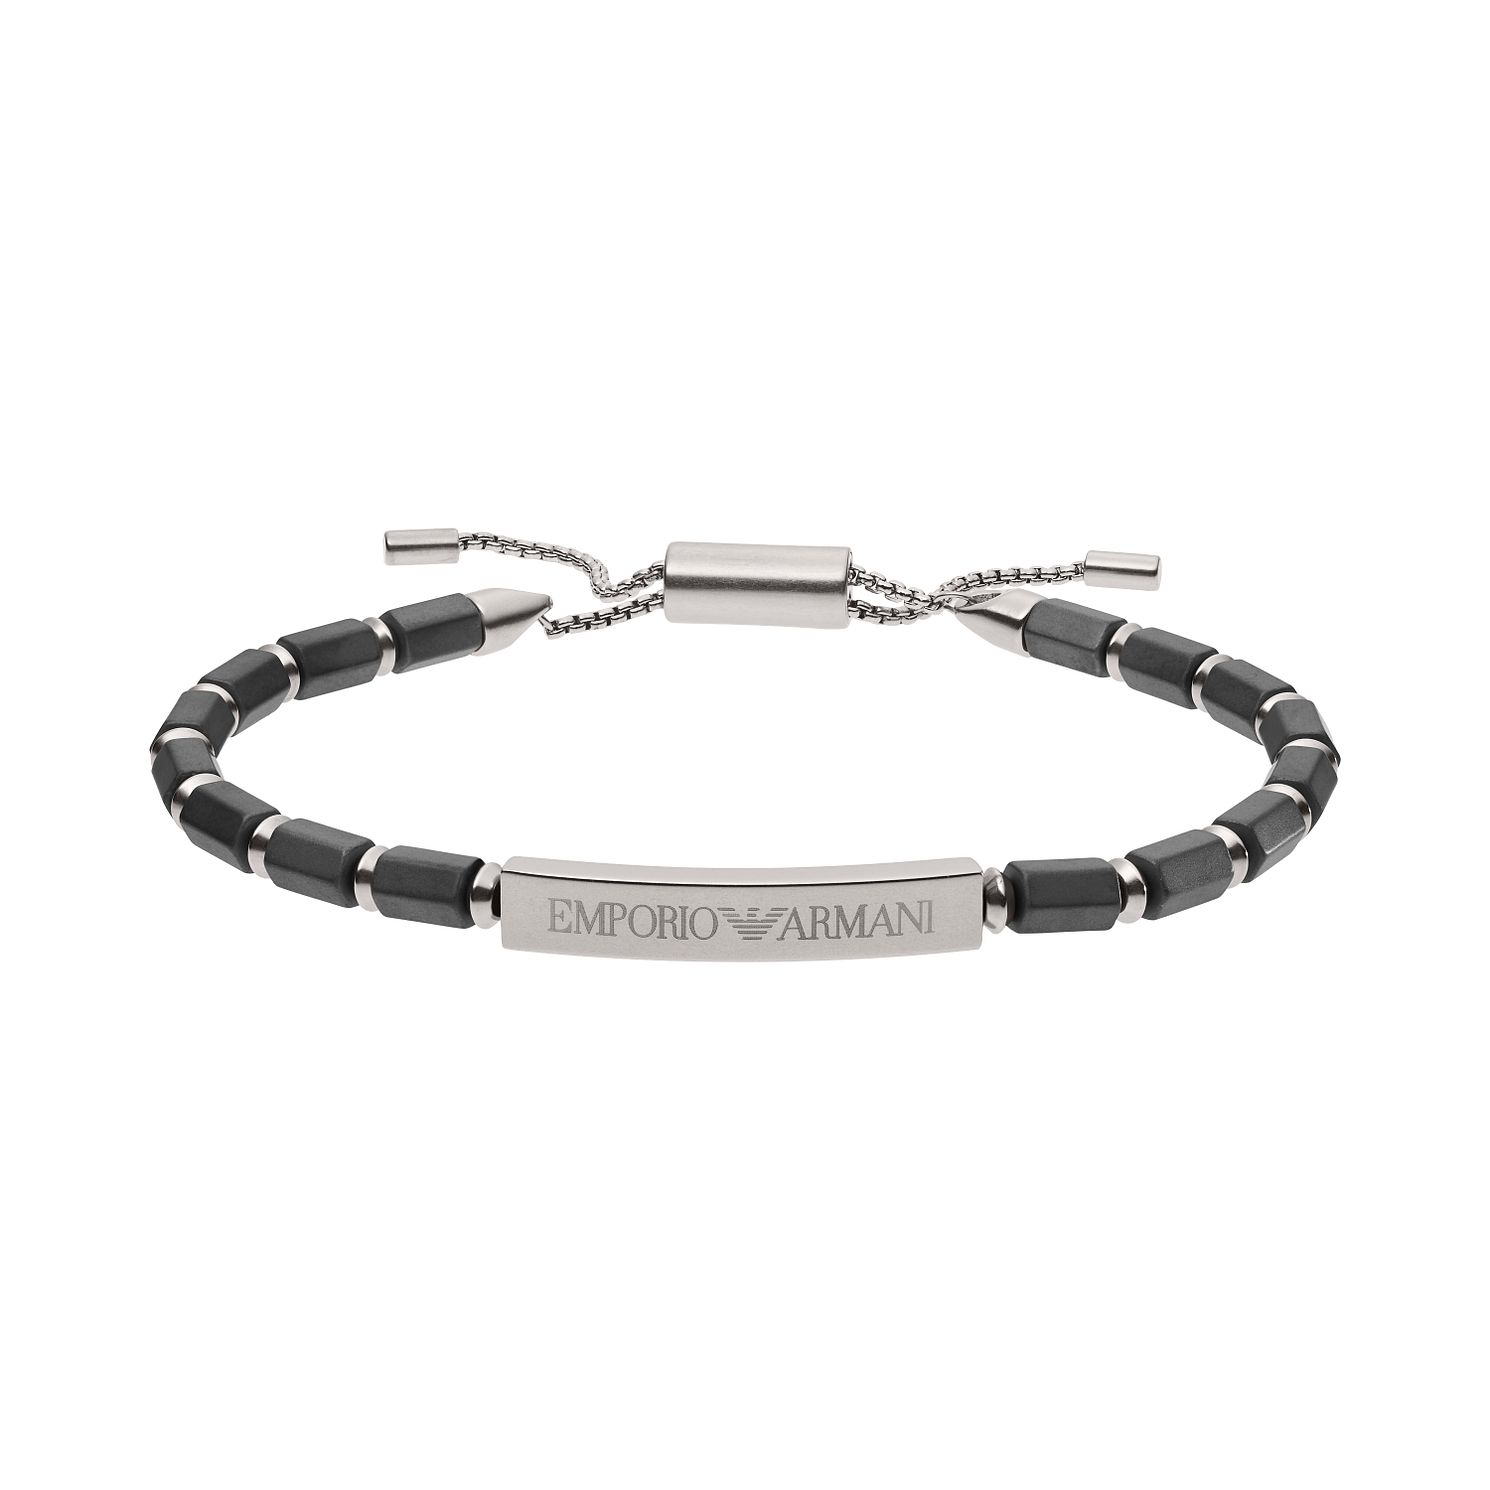 Emporio Armani Men's Light Magnesium Bar Bracelet - Product number 3485846